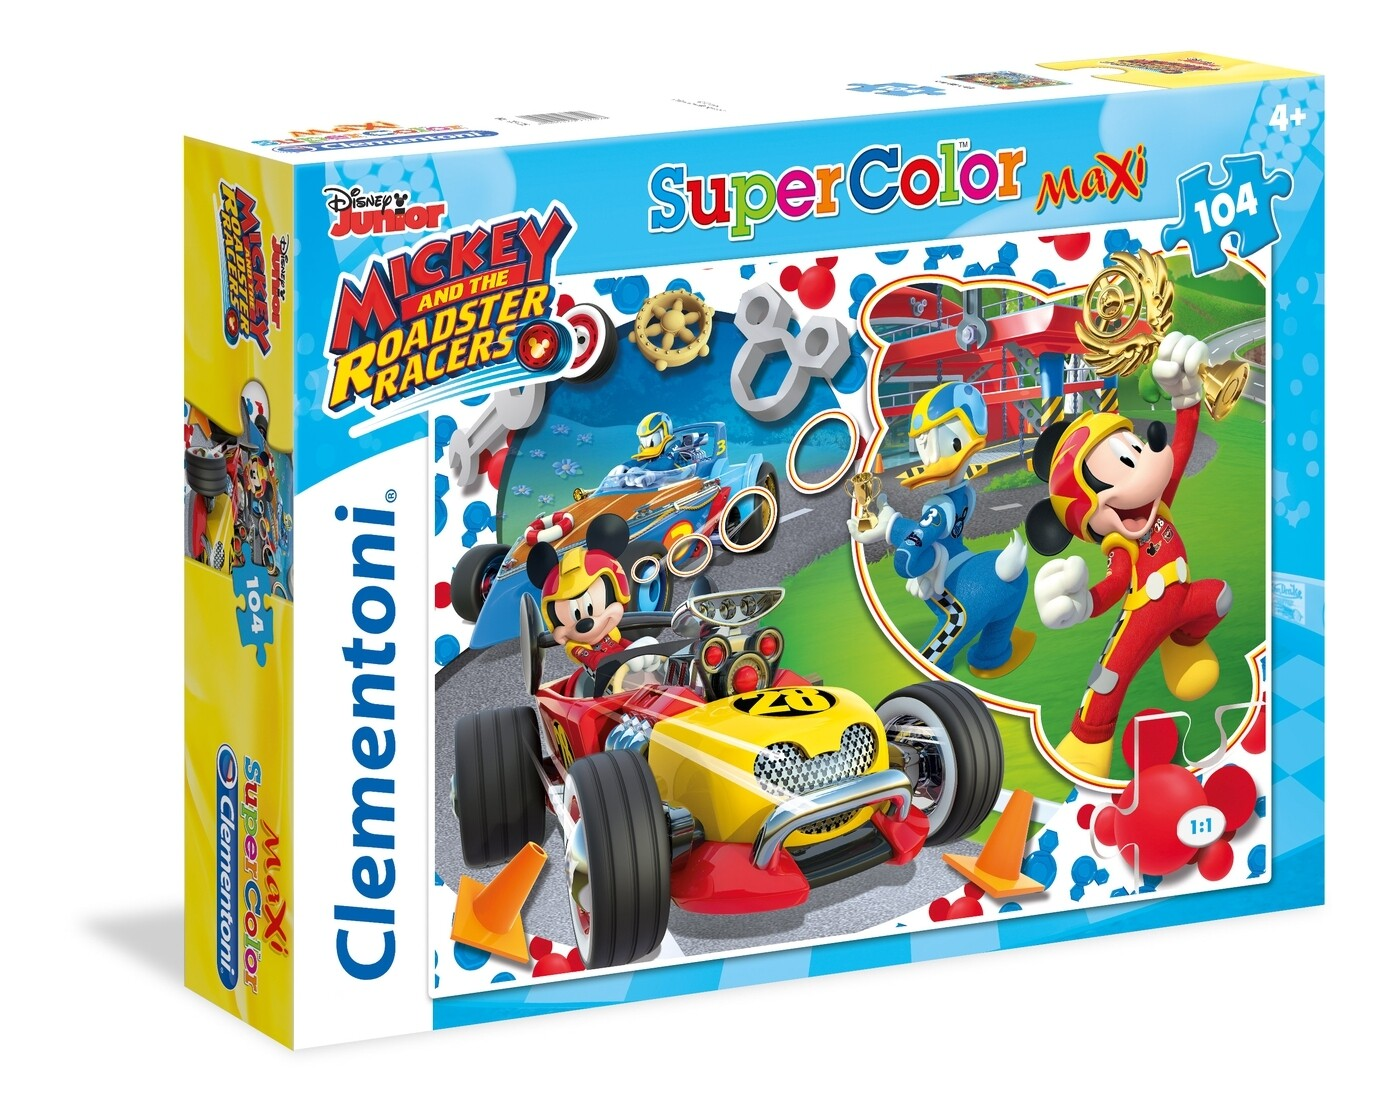 PUZZLE Supercolor MAXI - 104pcs - Mickey & Superpilotos - CLEMENTONI